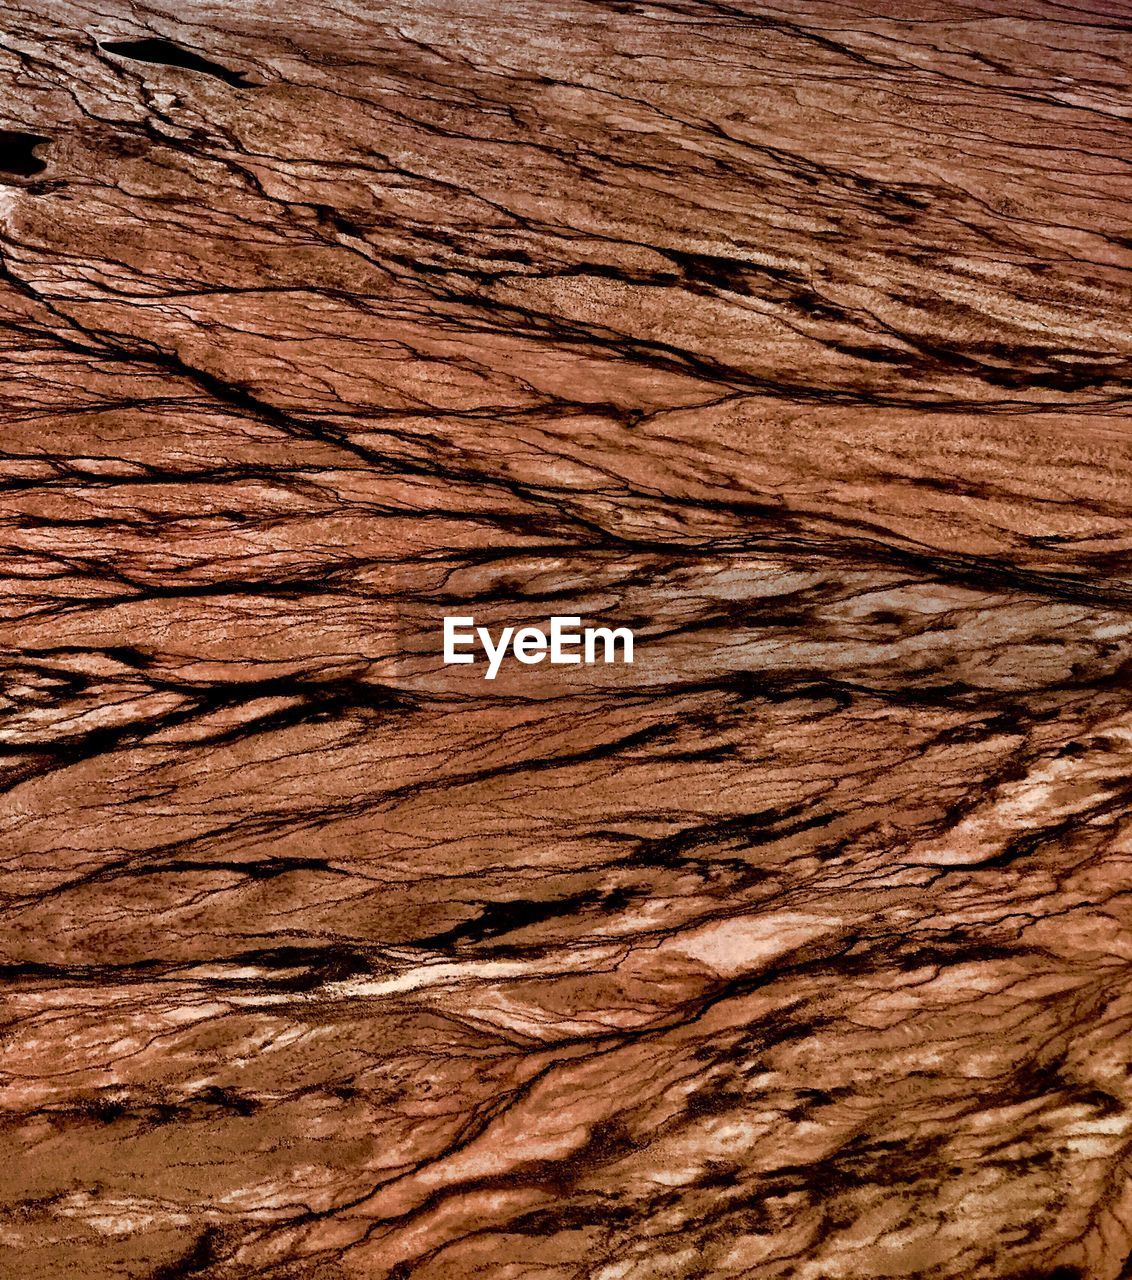 backgrounds, textured, pattern, brown, full frame, wood, wood - material, close-up, no people, wood grain, textured effect, extreme close-up, timber, nature, solid, abstract, rock, geology, rock - object, natural pattern, abstract backgrounds, surface level